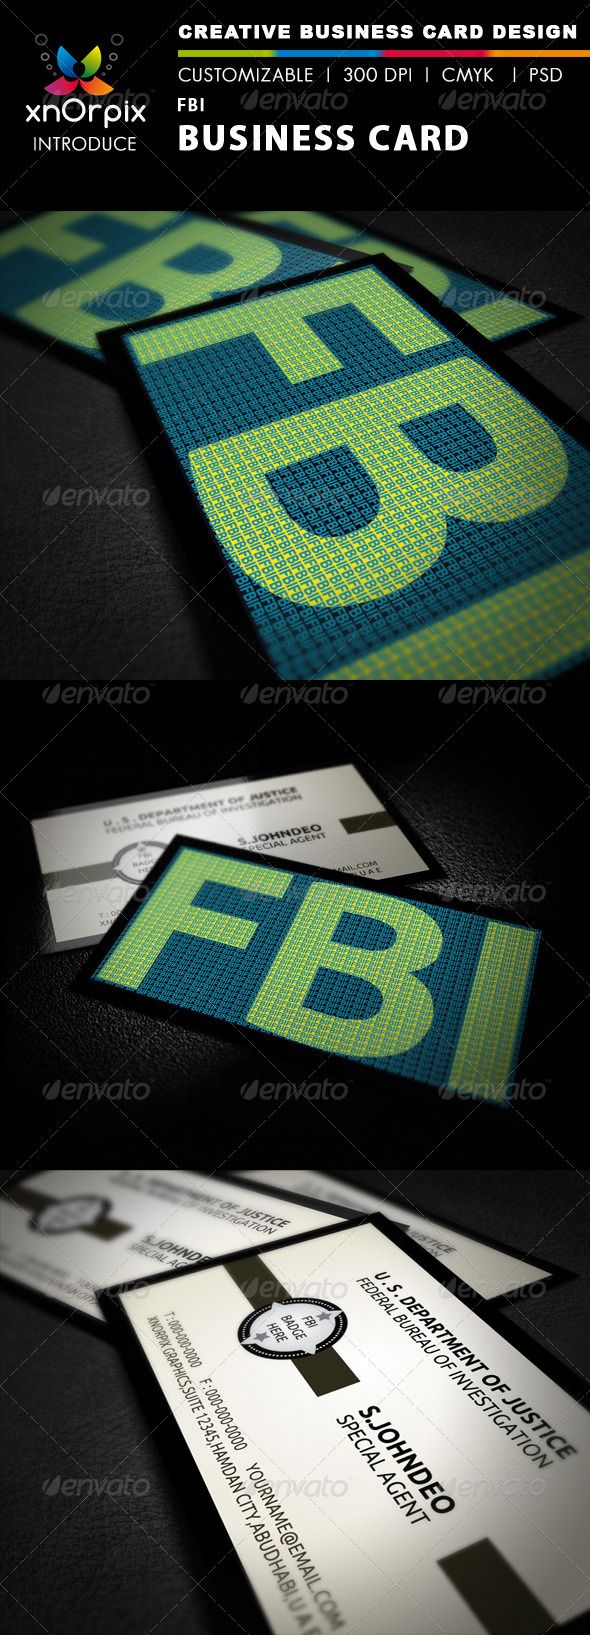 Fbi Business Card Business Card Branding Corporate Business Card Print Templates